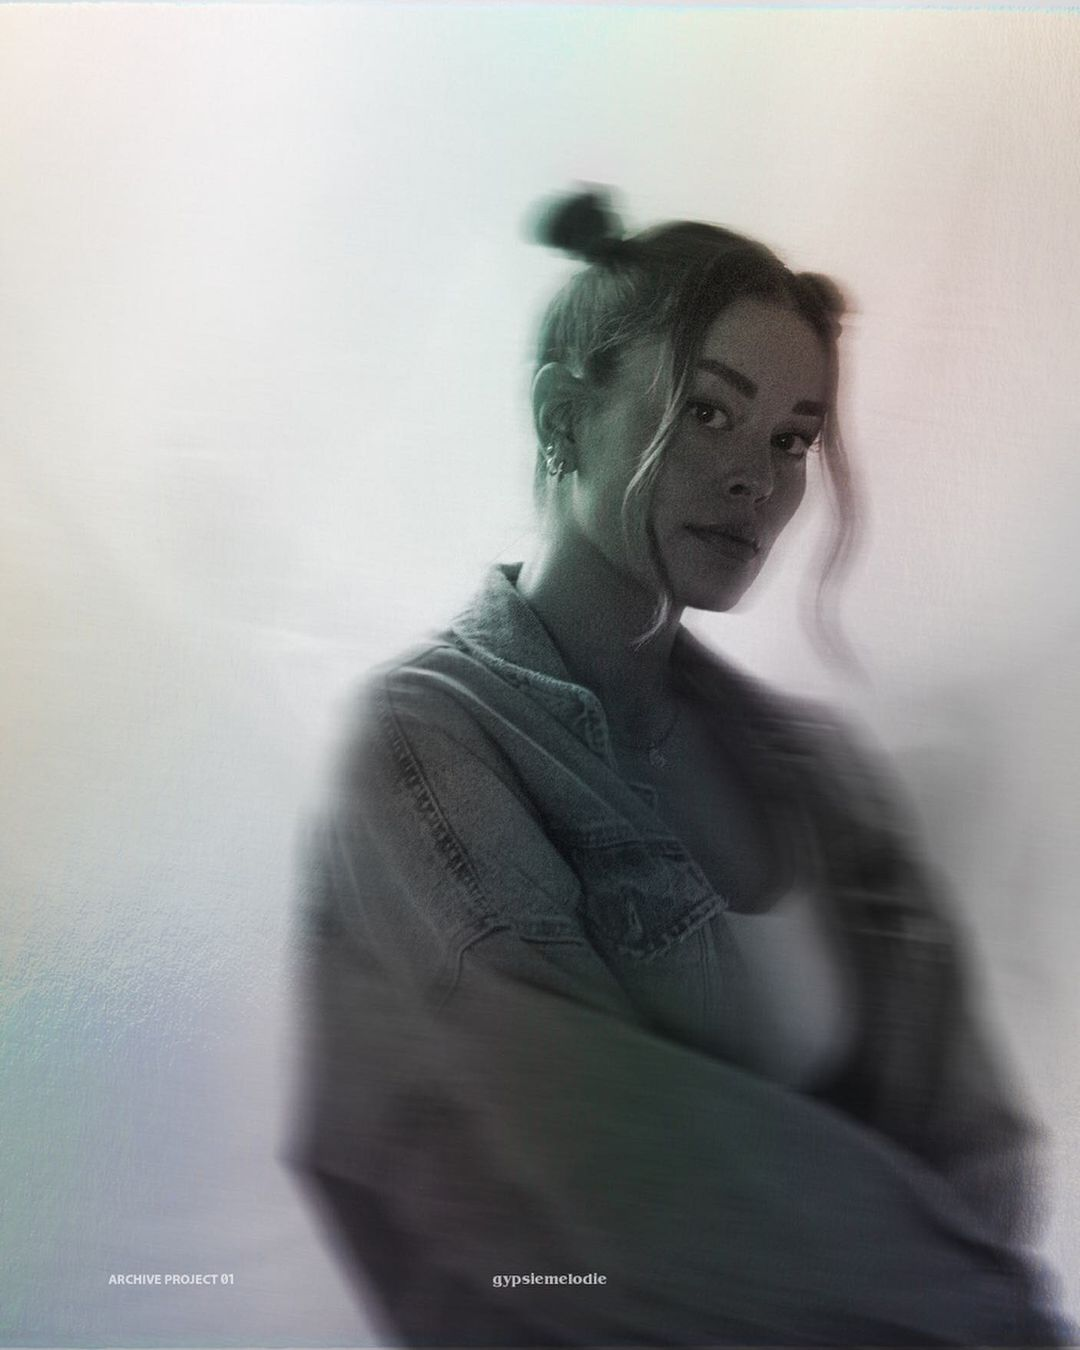 black and white blurry image of girl taken on a film camera